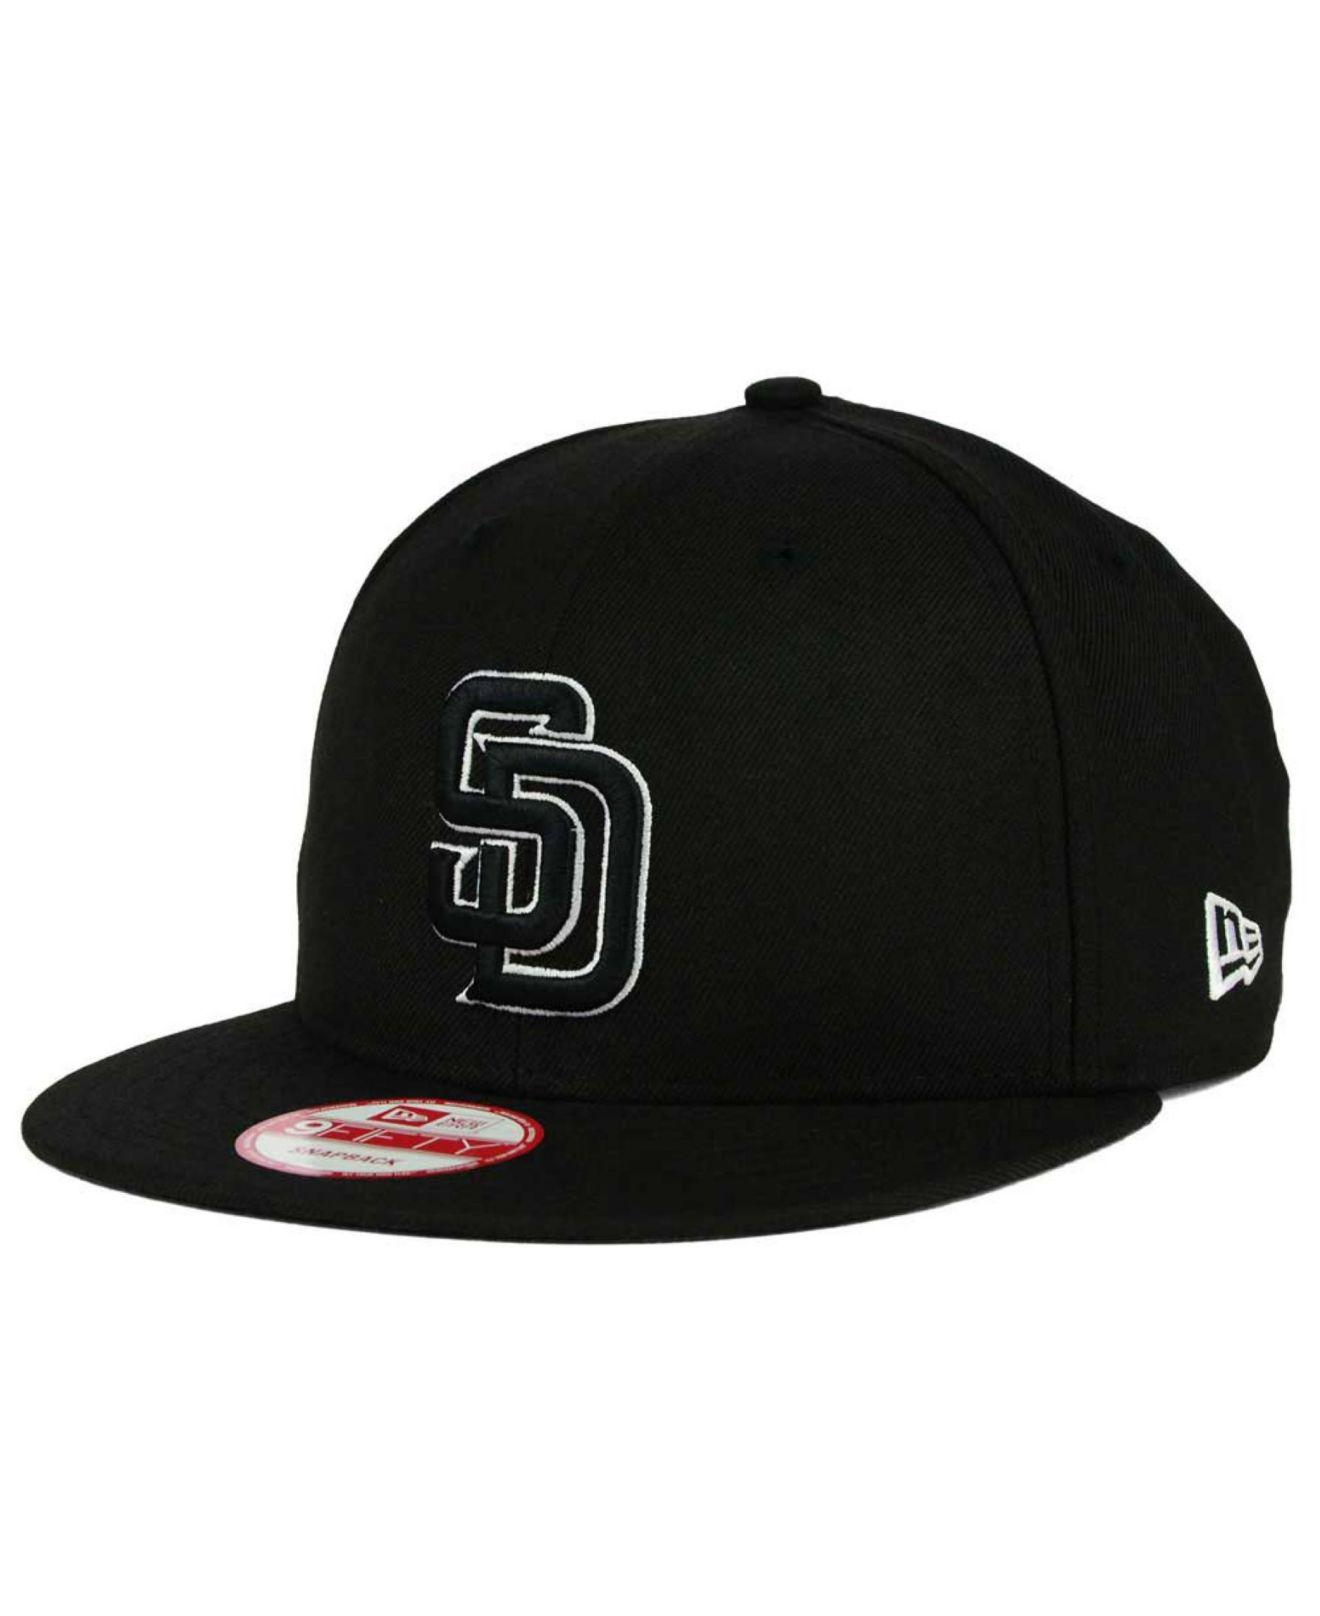 dac5667d9ba14 ... new era mlb snap dub 9fifty snapback cap gold sale ktz. mens black san  diego padres b dub 9fifty snapback cap e056a 87b69 ...